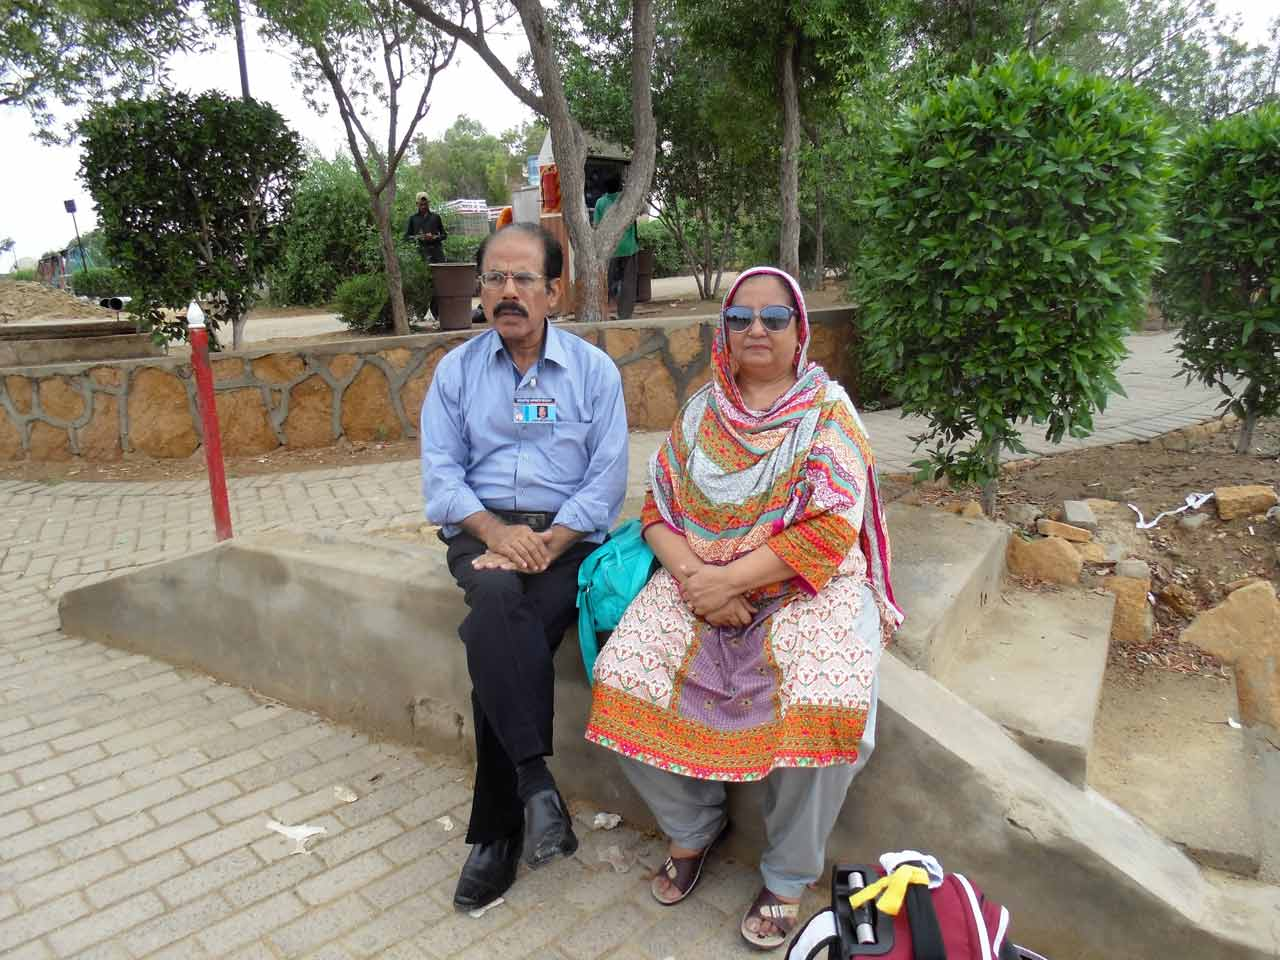 Shafiq A. Khan and Mrs. Shahnaz Shafiq